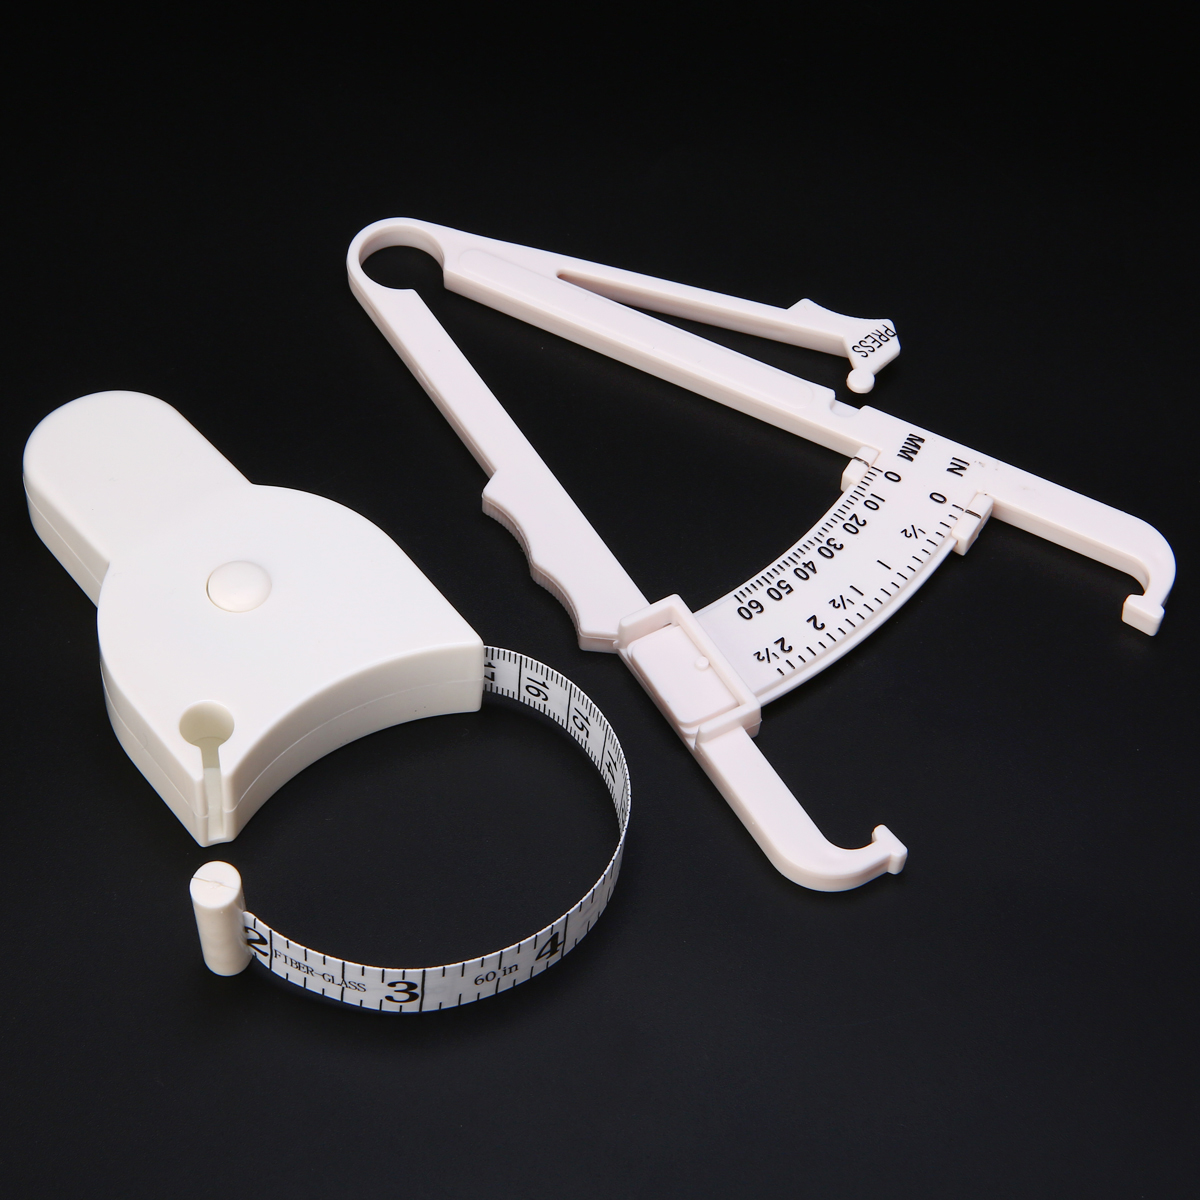 2PCS White PVC Body Fat Caliper Body Fat Tester Measurement Tape Tester Fitness Lose Weight Body Building Equipment